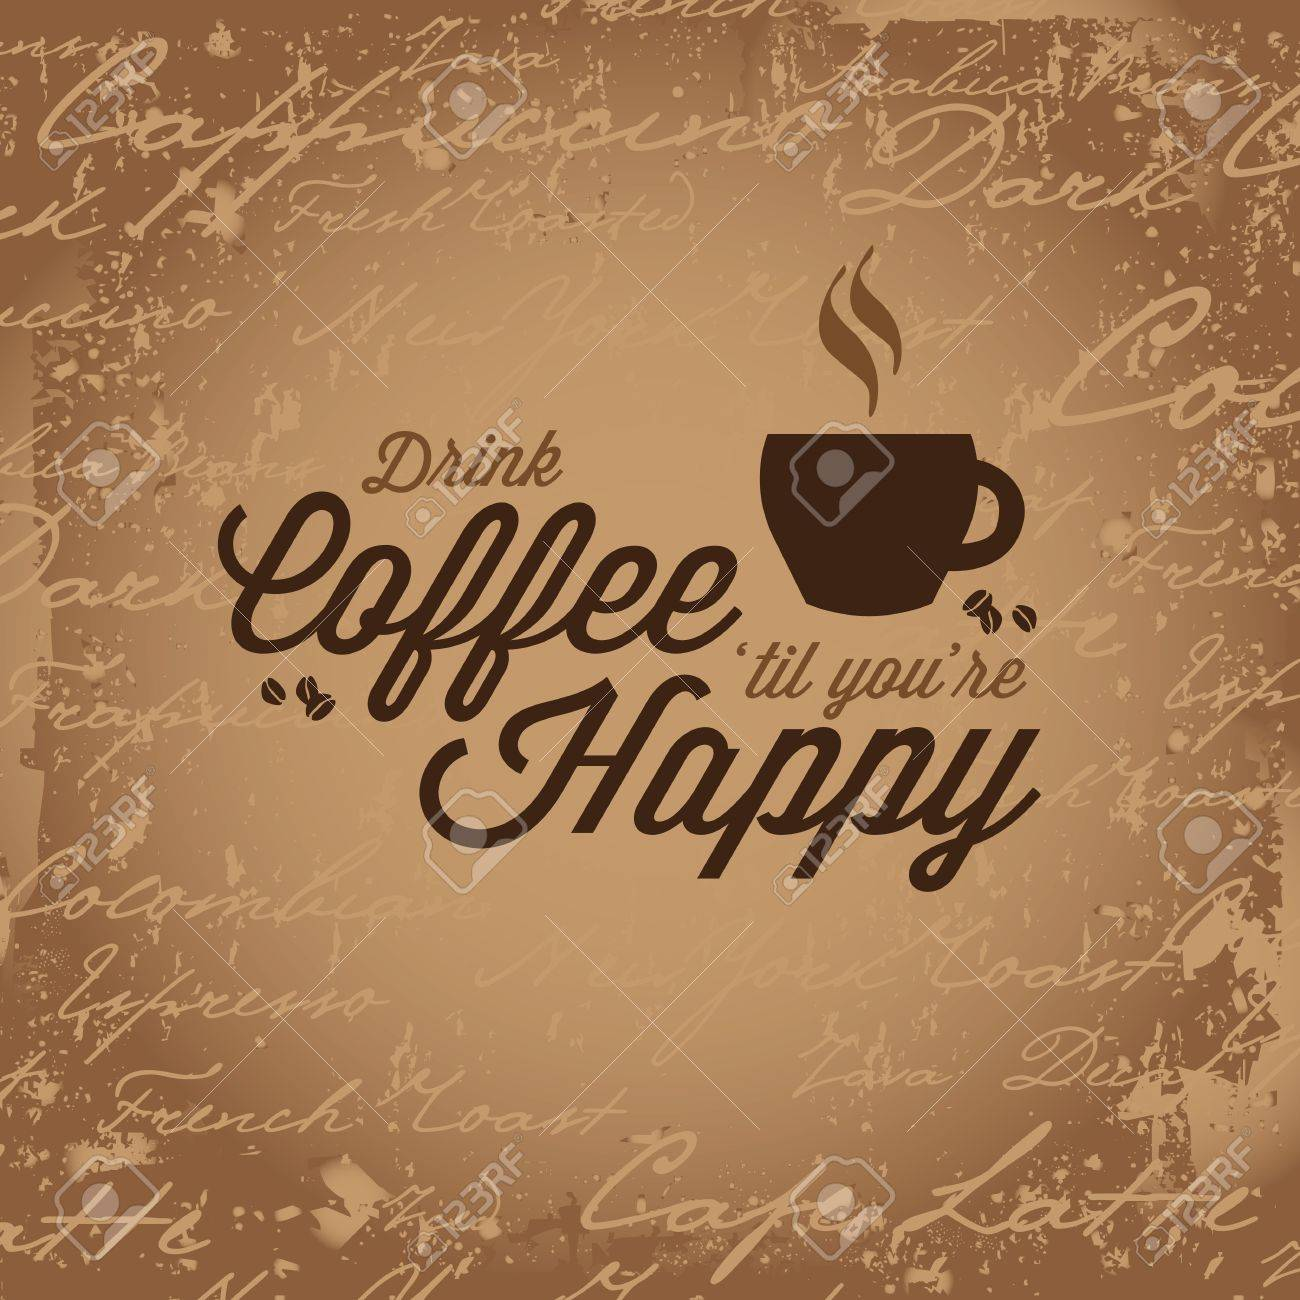 Vintage style design that reads Drink Coffe Til Youre Happy. Stock Vector - 20982251